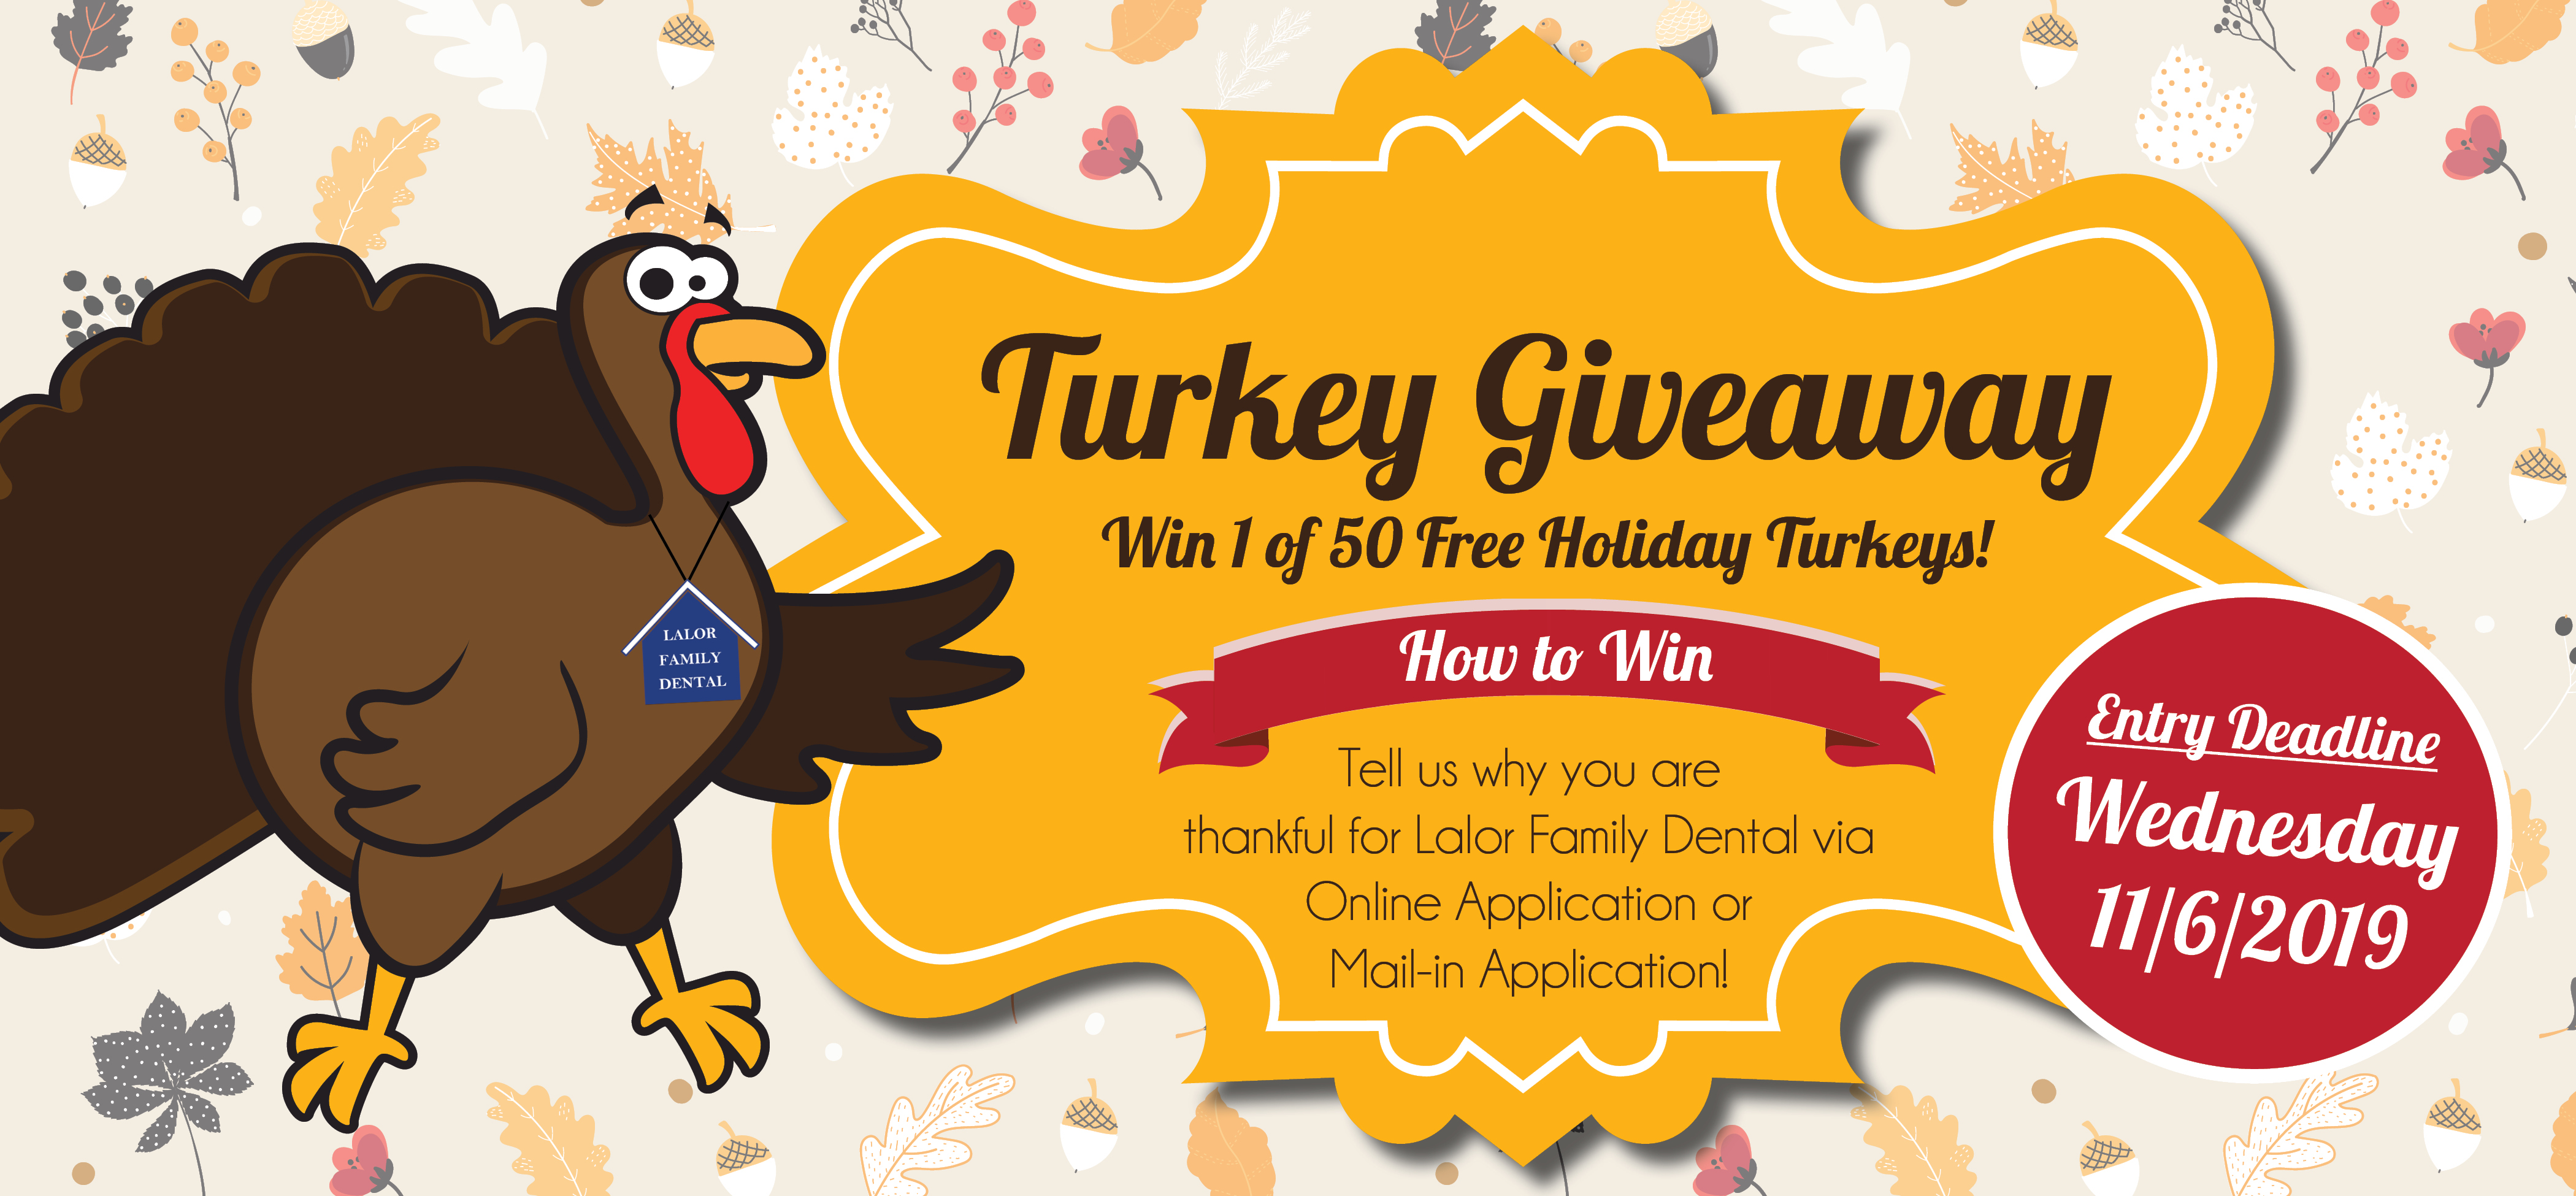 Turkey Giveaway Email - Fun Patient Events